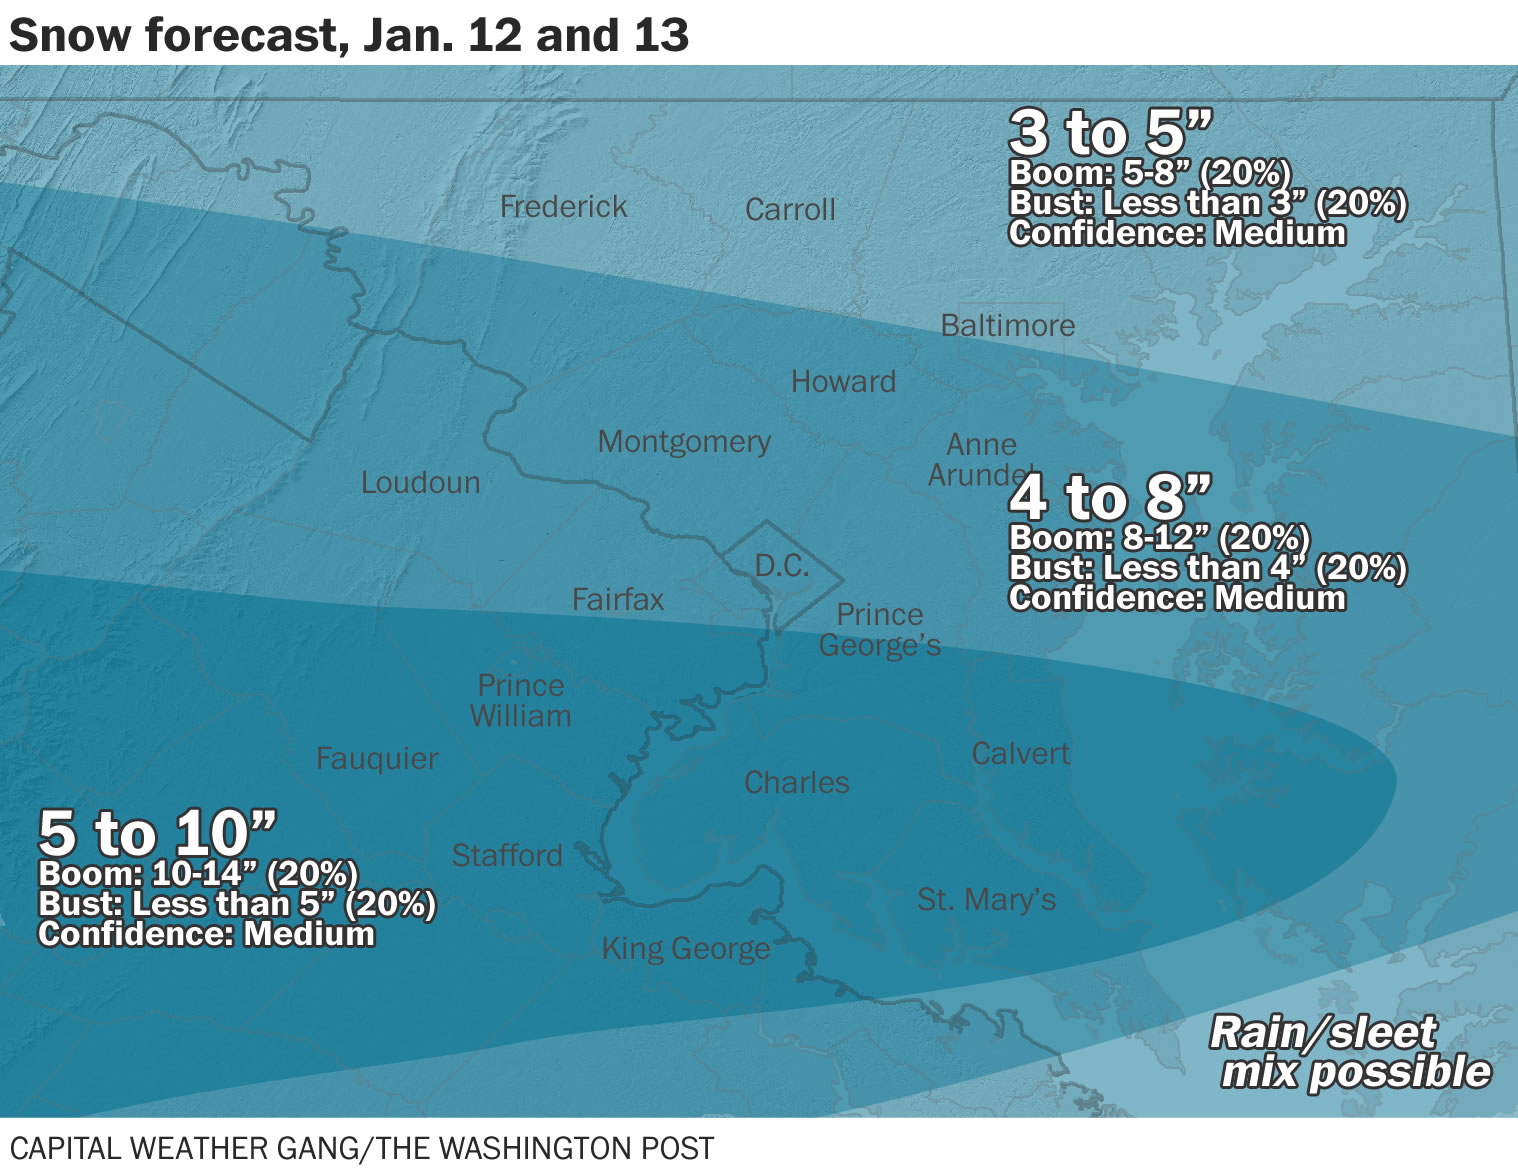 Updated forecast: Snow starting by evening and lasting into